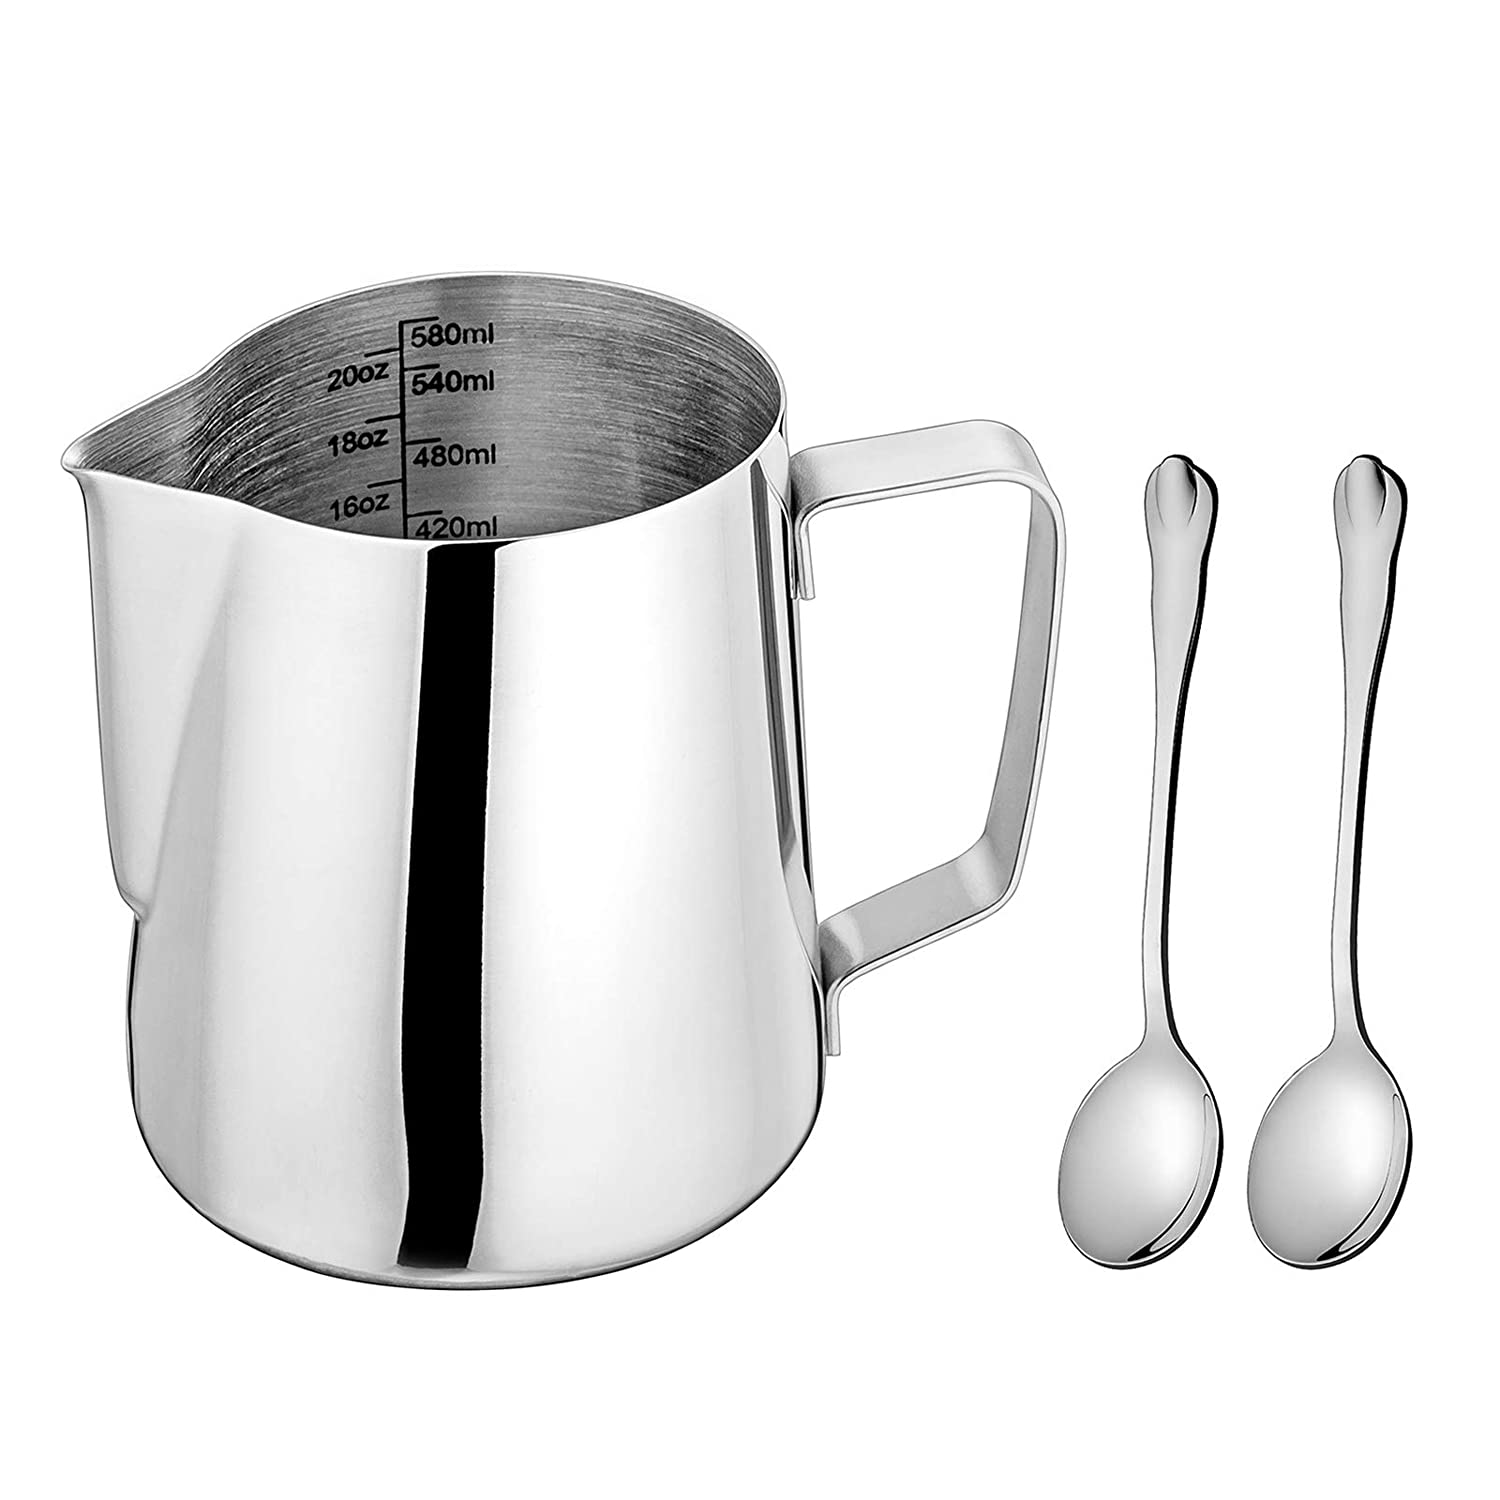 Milk Frothing Pitcher, LIANYU Stainless Steel Espresso Coffee Steaming Pitcher 20oz, Dishwasher Safe, Attached Mini Tea Spoons